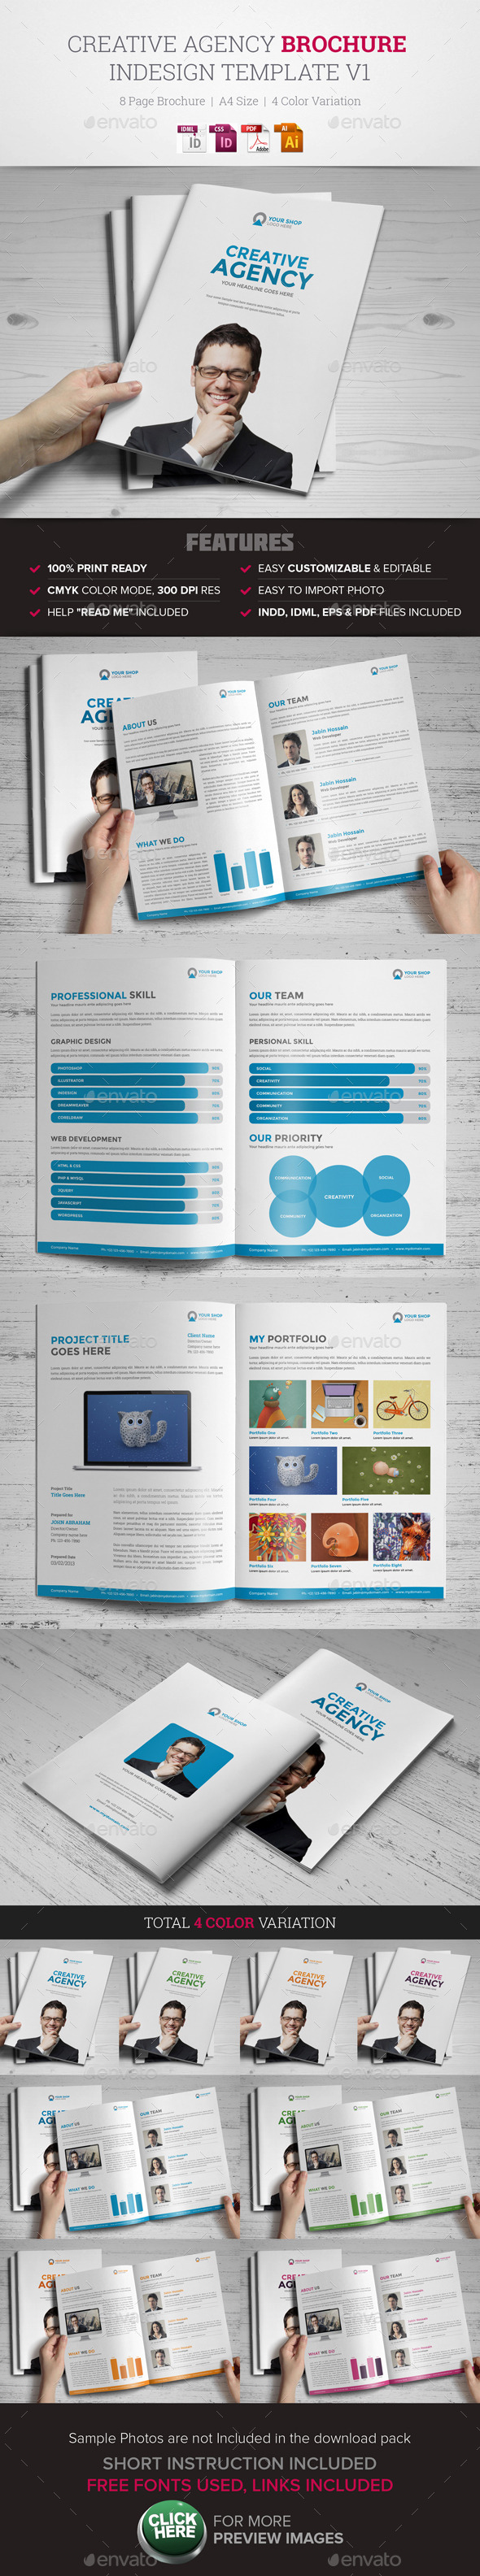 Creative Agency Brochure InDesign Template v1 - Corporate Brochures